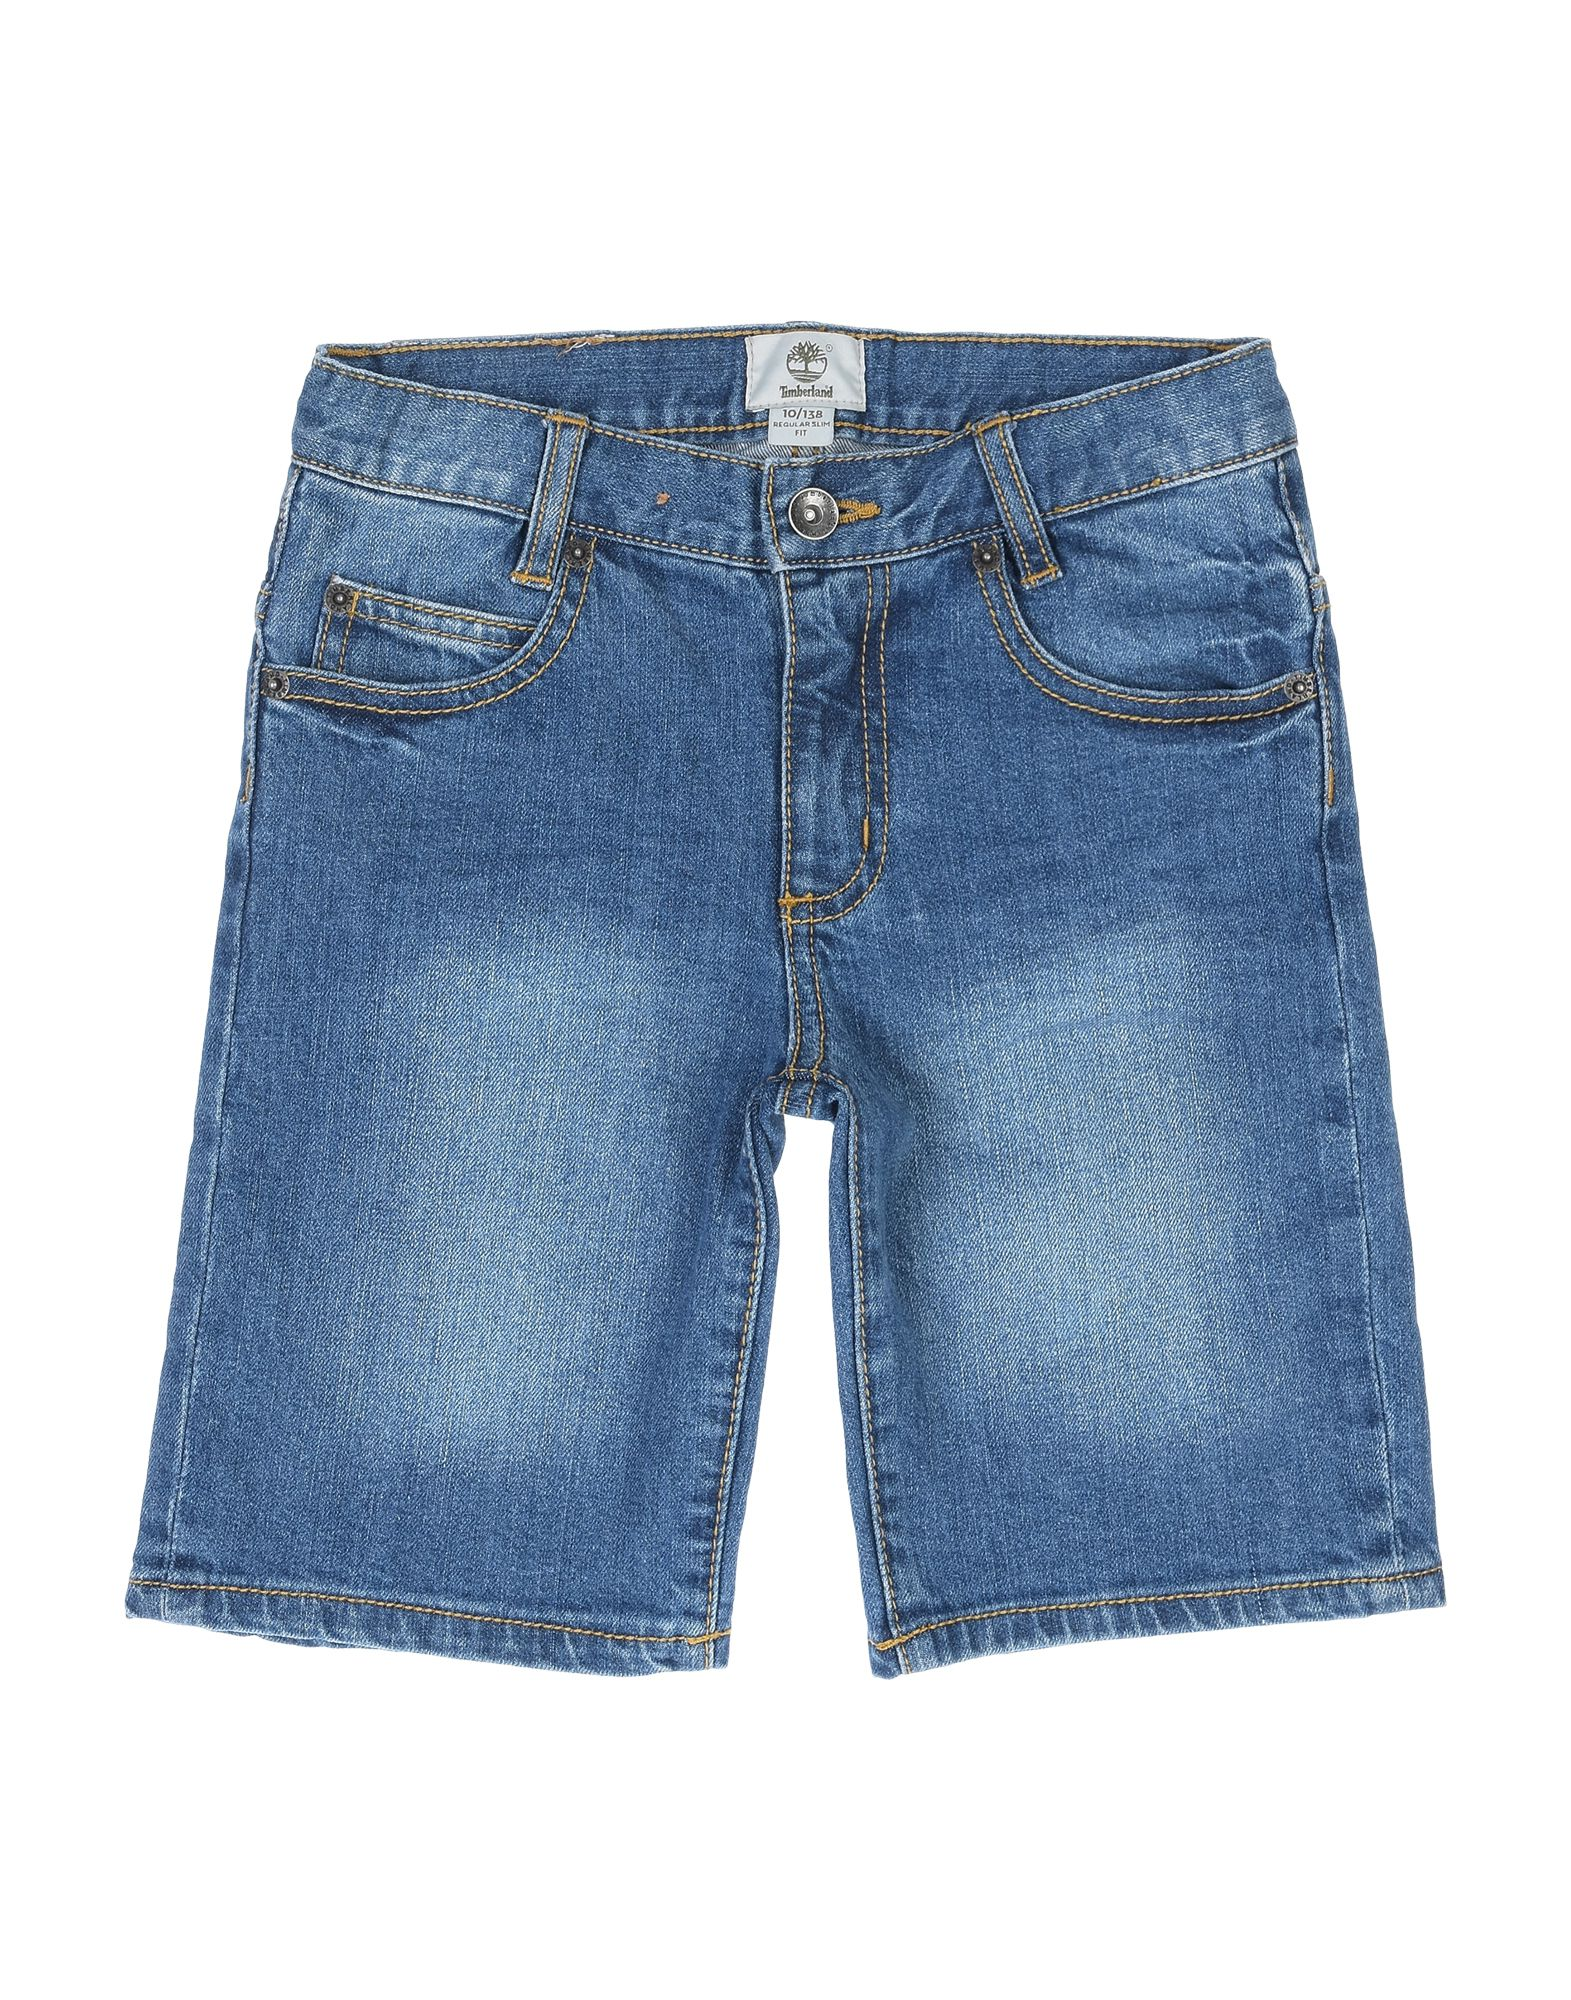 59e5eda9 Timberland Denim Shorts Boy 9-16 years online on YOOX Lithuania